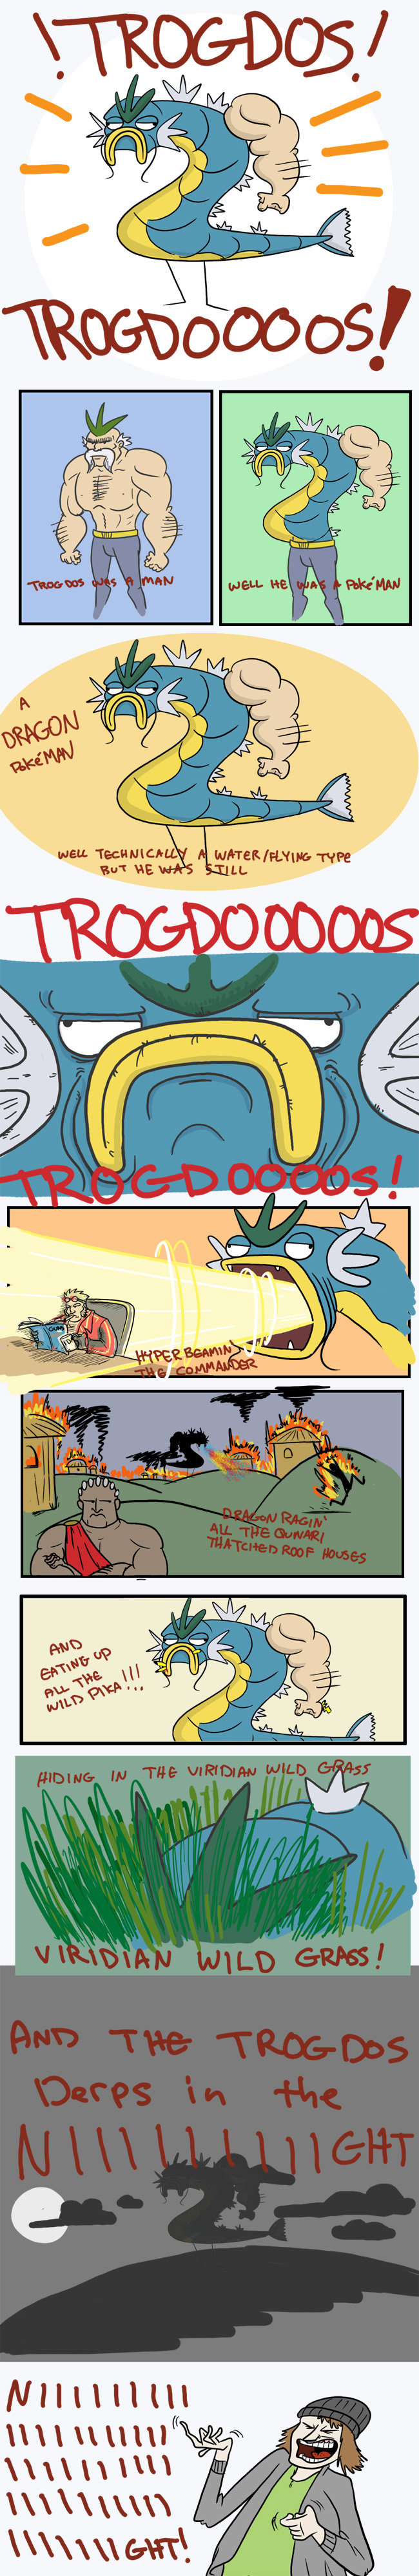 TROGDOS!. Not mine, found this on a site :3 Don't care about thumbs, just wanna spread some lulz ...And maybe a few epics. mu n nu Hilts; ever', A 7 rid:. I had to find Trogdor on youtube after this...then I nostalga'd... Thanks for taking me back to my high school days!